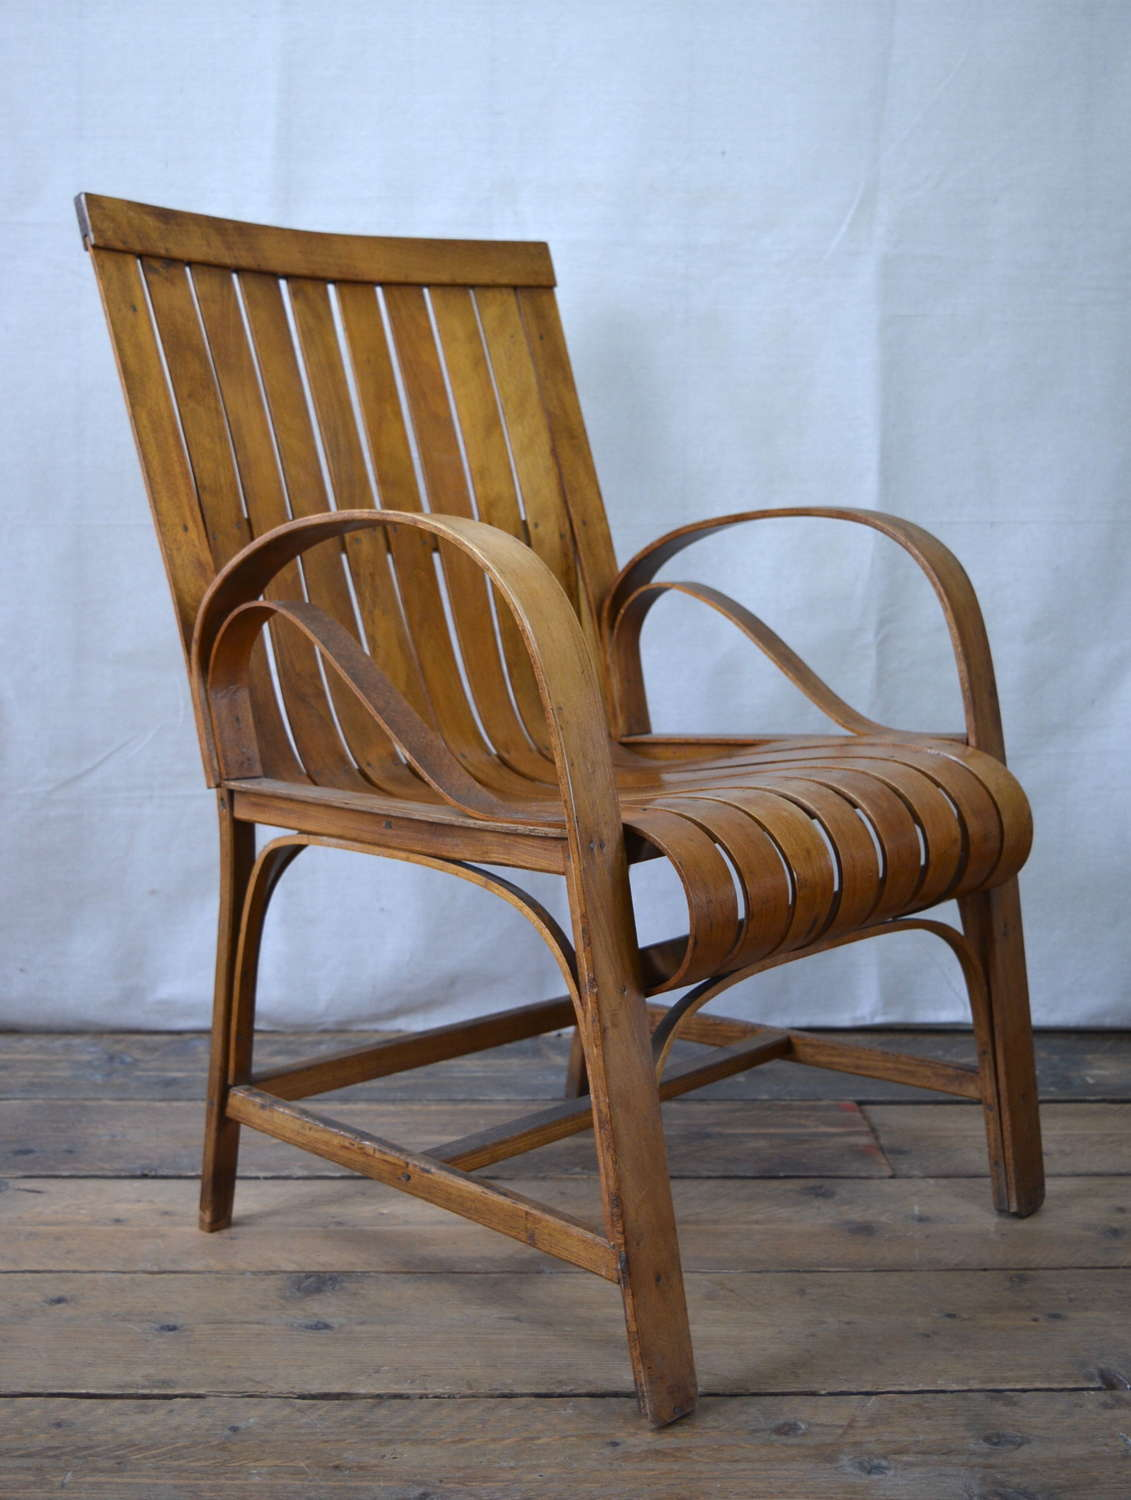 EARLY 20TH CENTURY ARTS AND CRAFTS CHAIR